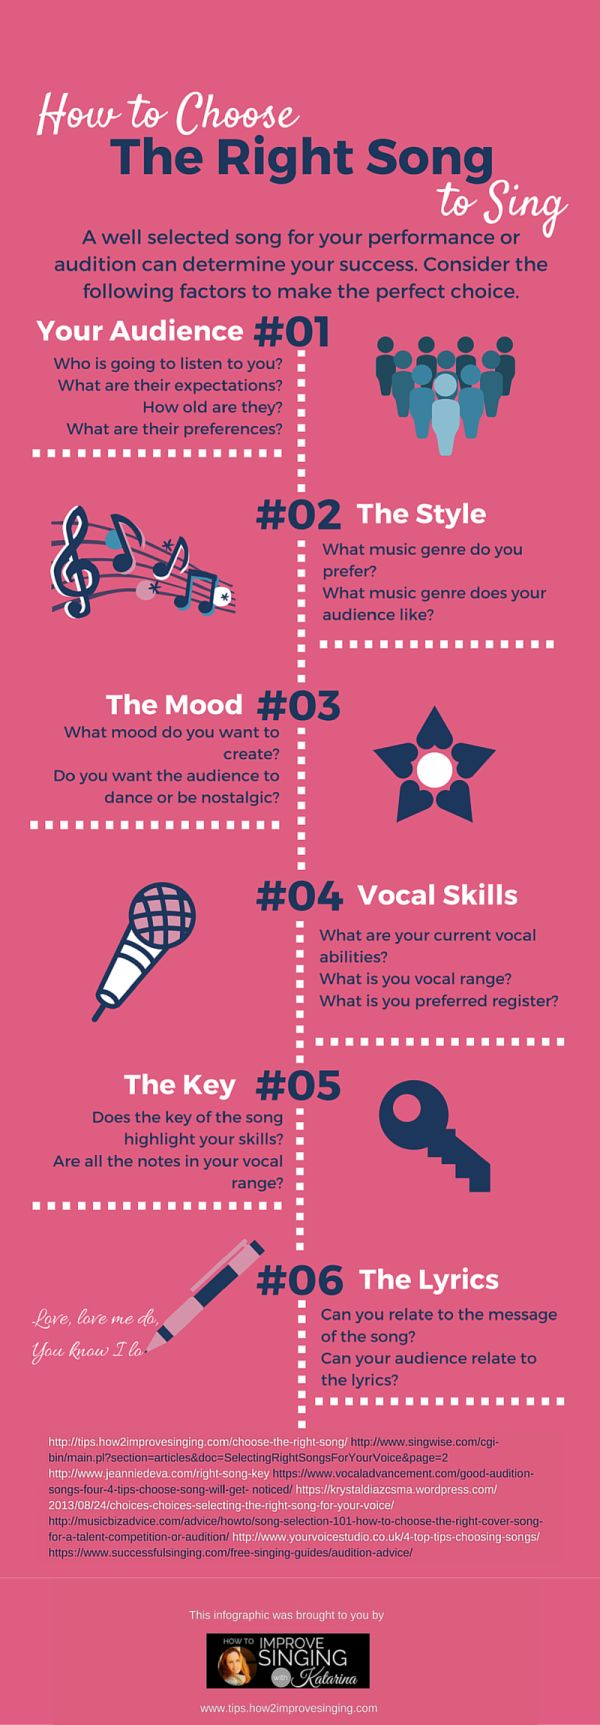 Learn how to choose the right song to sing: http://tips.how2improvesinging.com/choose-the-right-song/